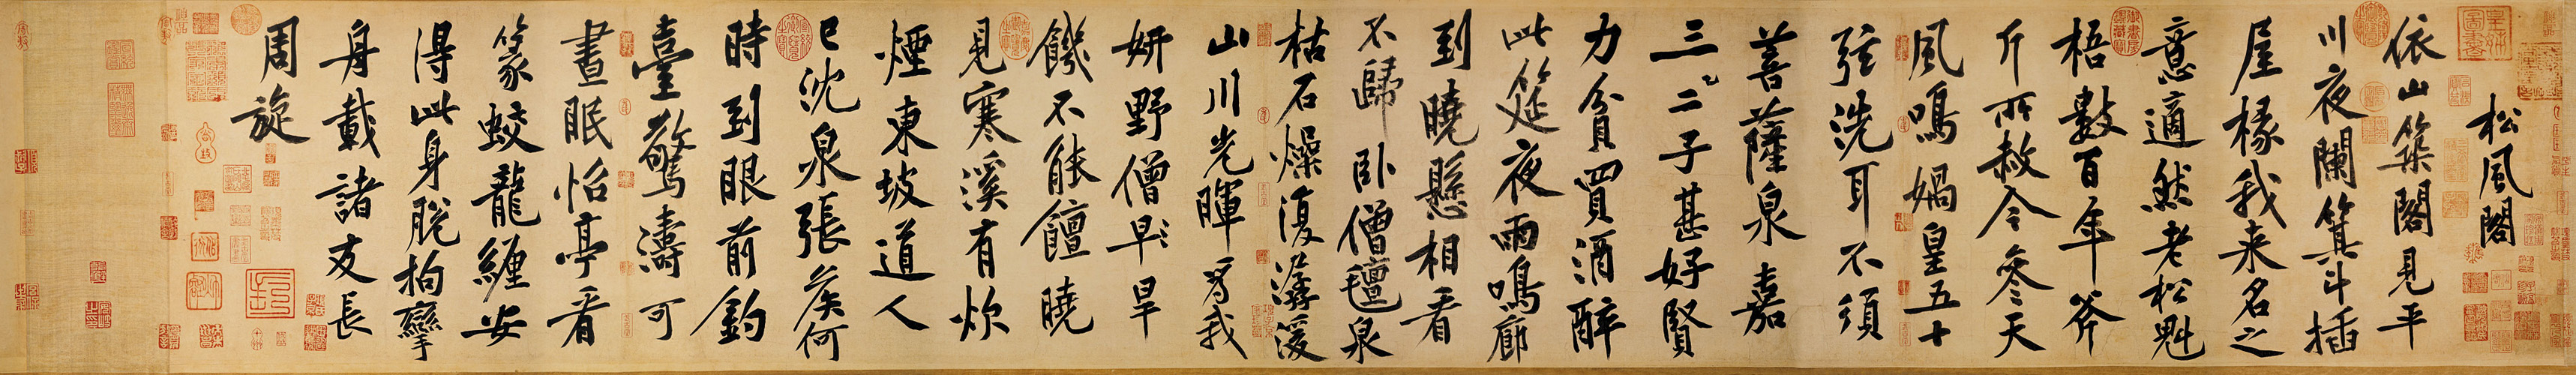 Huang Tingjian: Poem on the Hall of Pines and Wind